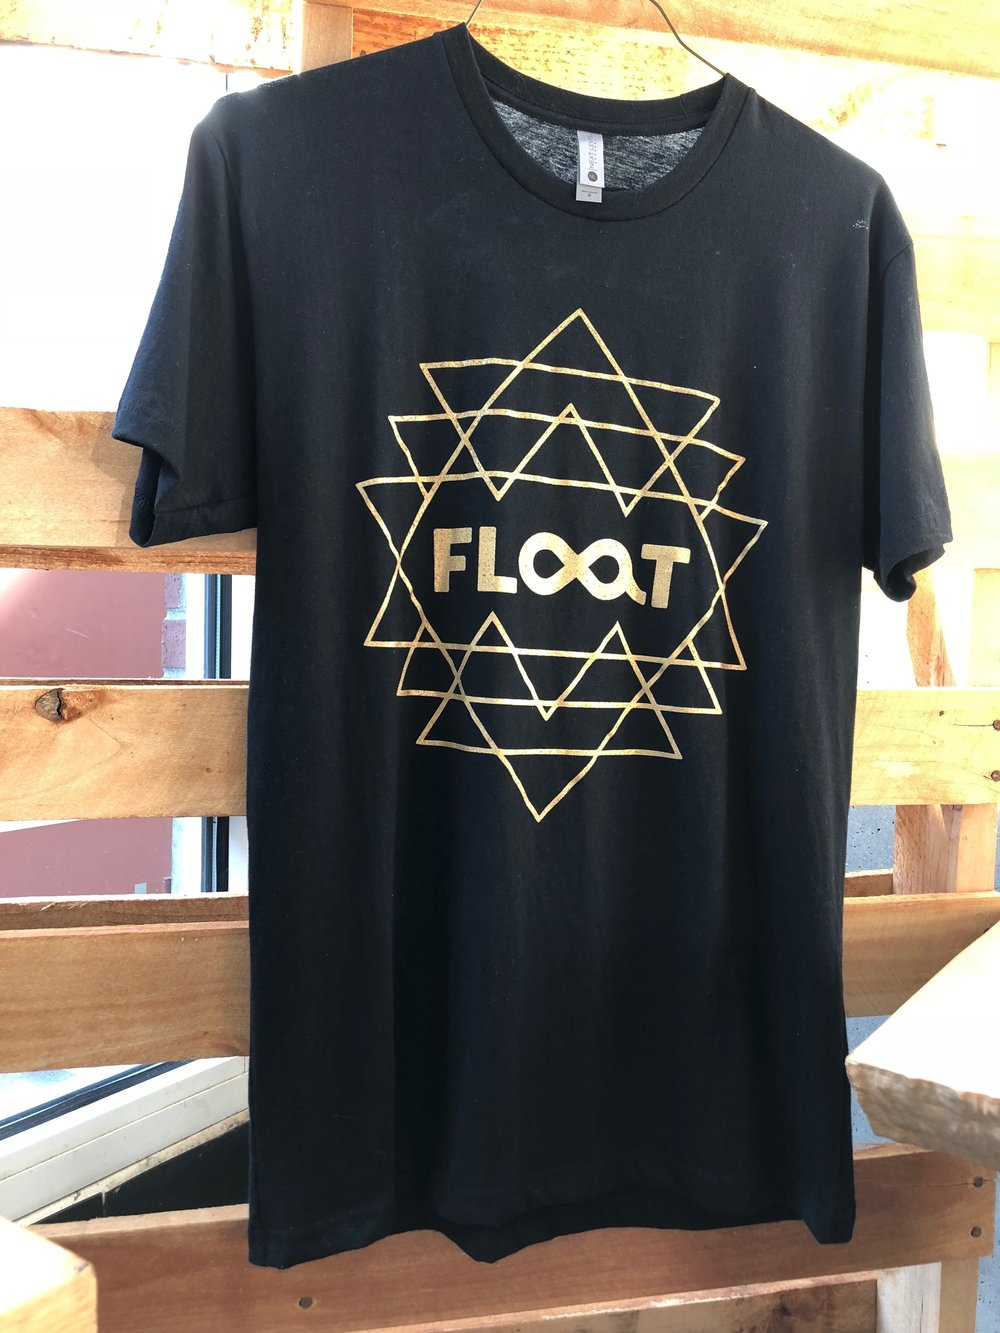 FLOAT SEATTLE TEES  - Support us and spread the word on this amazing therapy!   $20 each